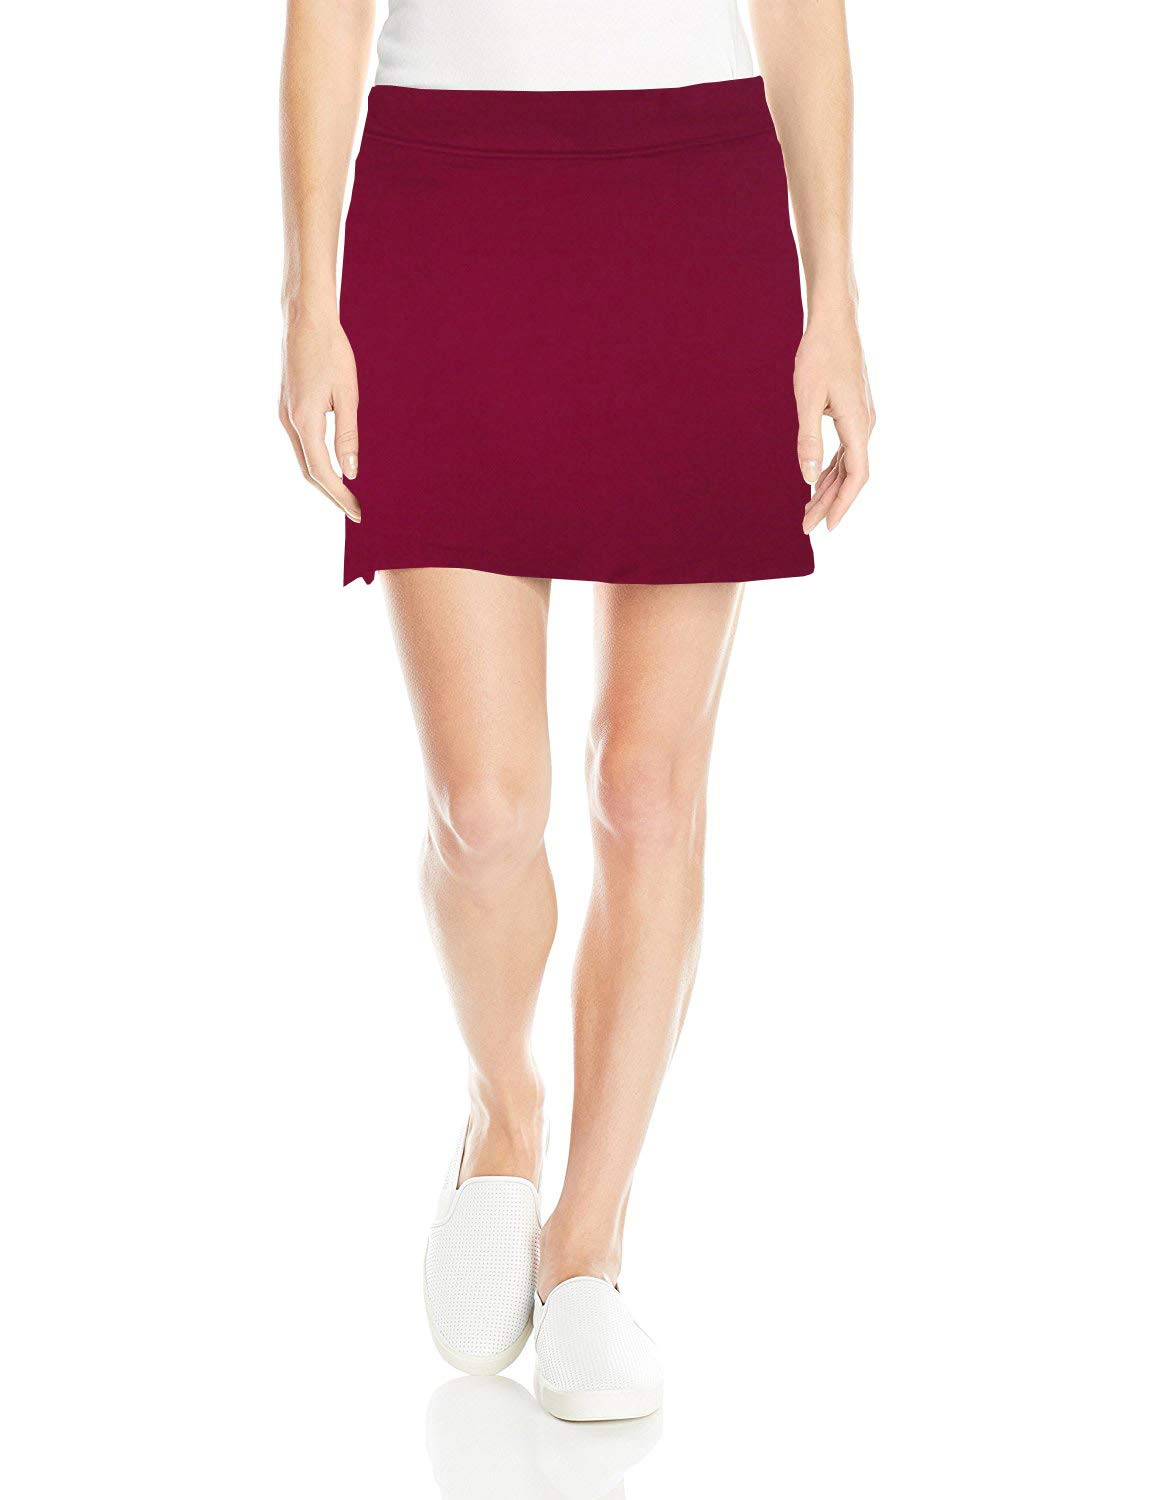 Colorado Clothing Women's Everyday Skort (Cranberry Crush, X-Small) by Colorado Clothing